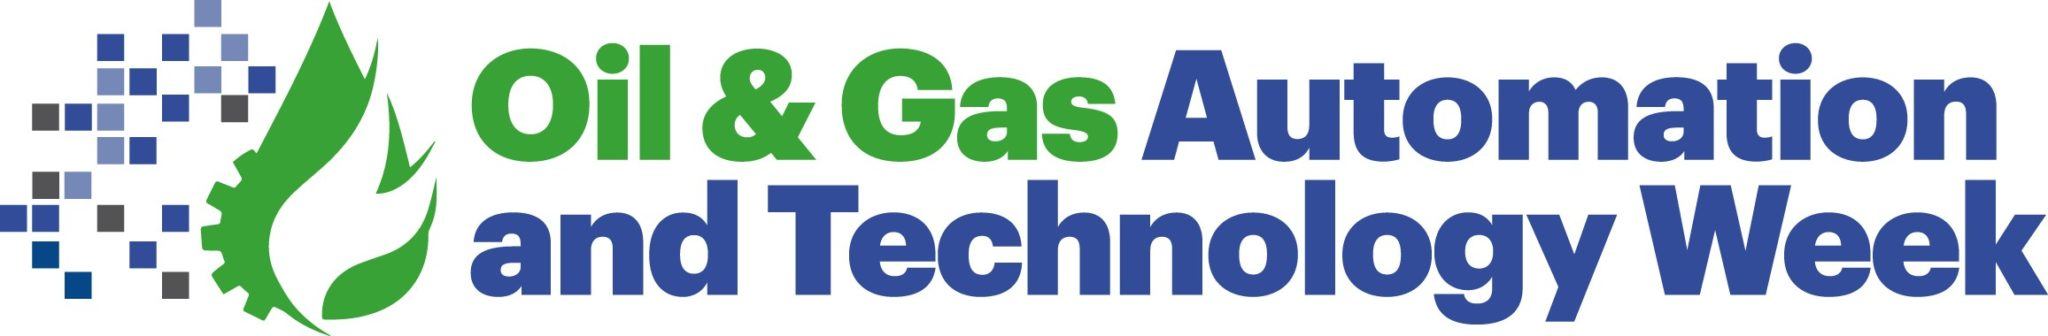 Oil & Gas Automation and Technology Week